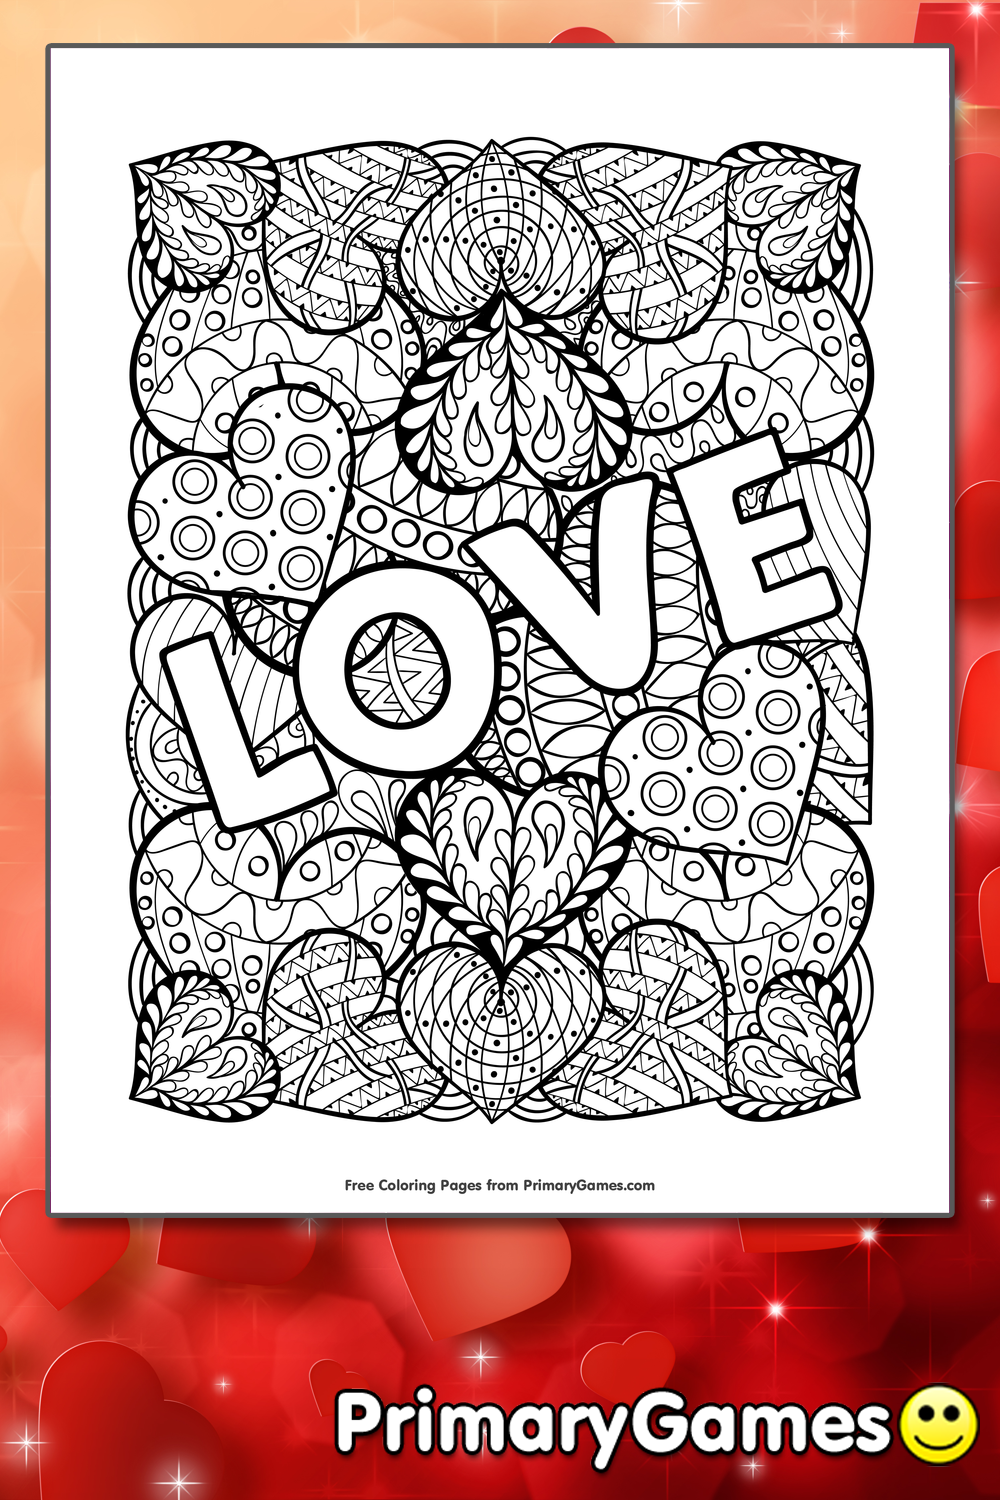 Love Coloring Page • FREE Printable PDF from PrimaryGames